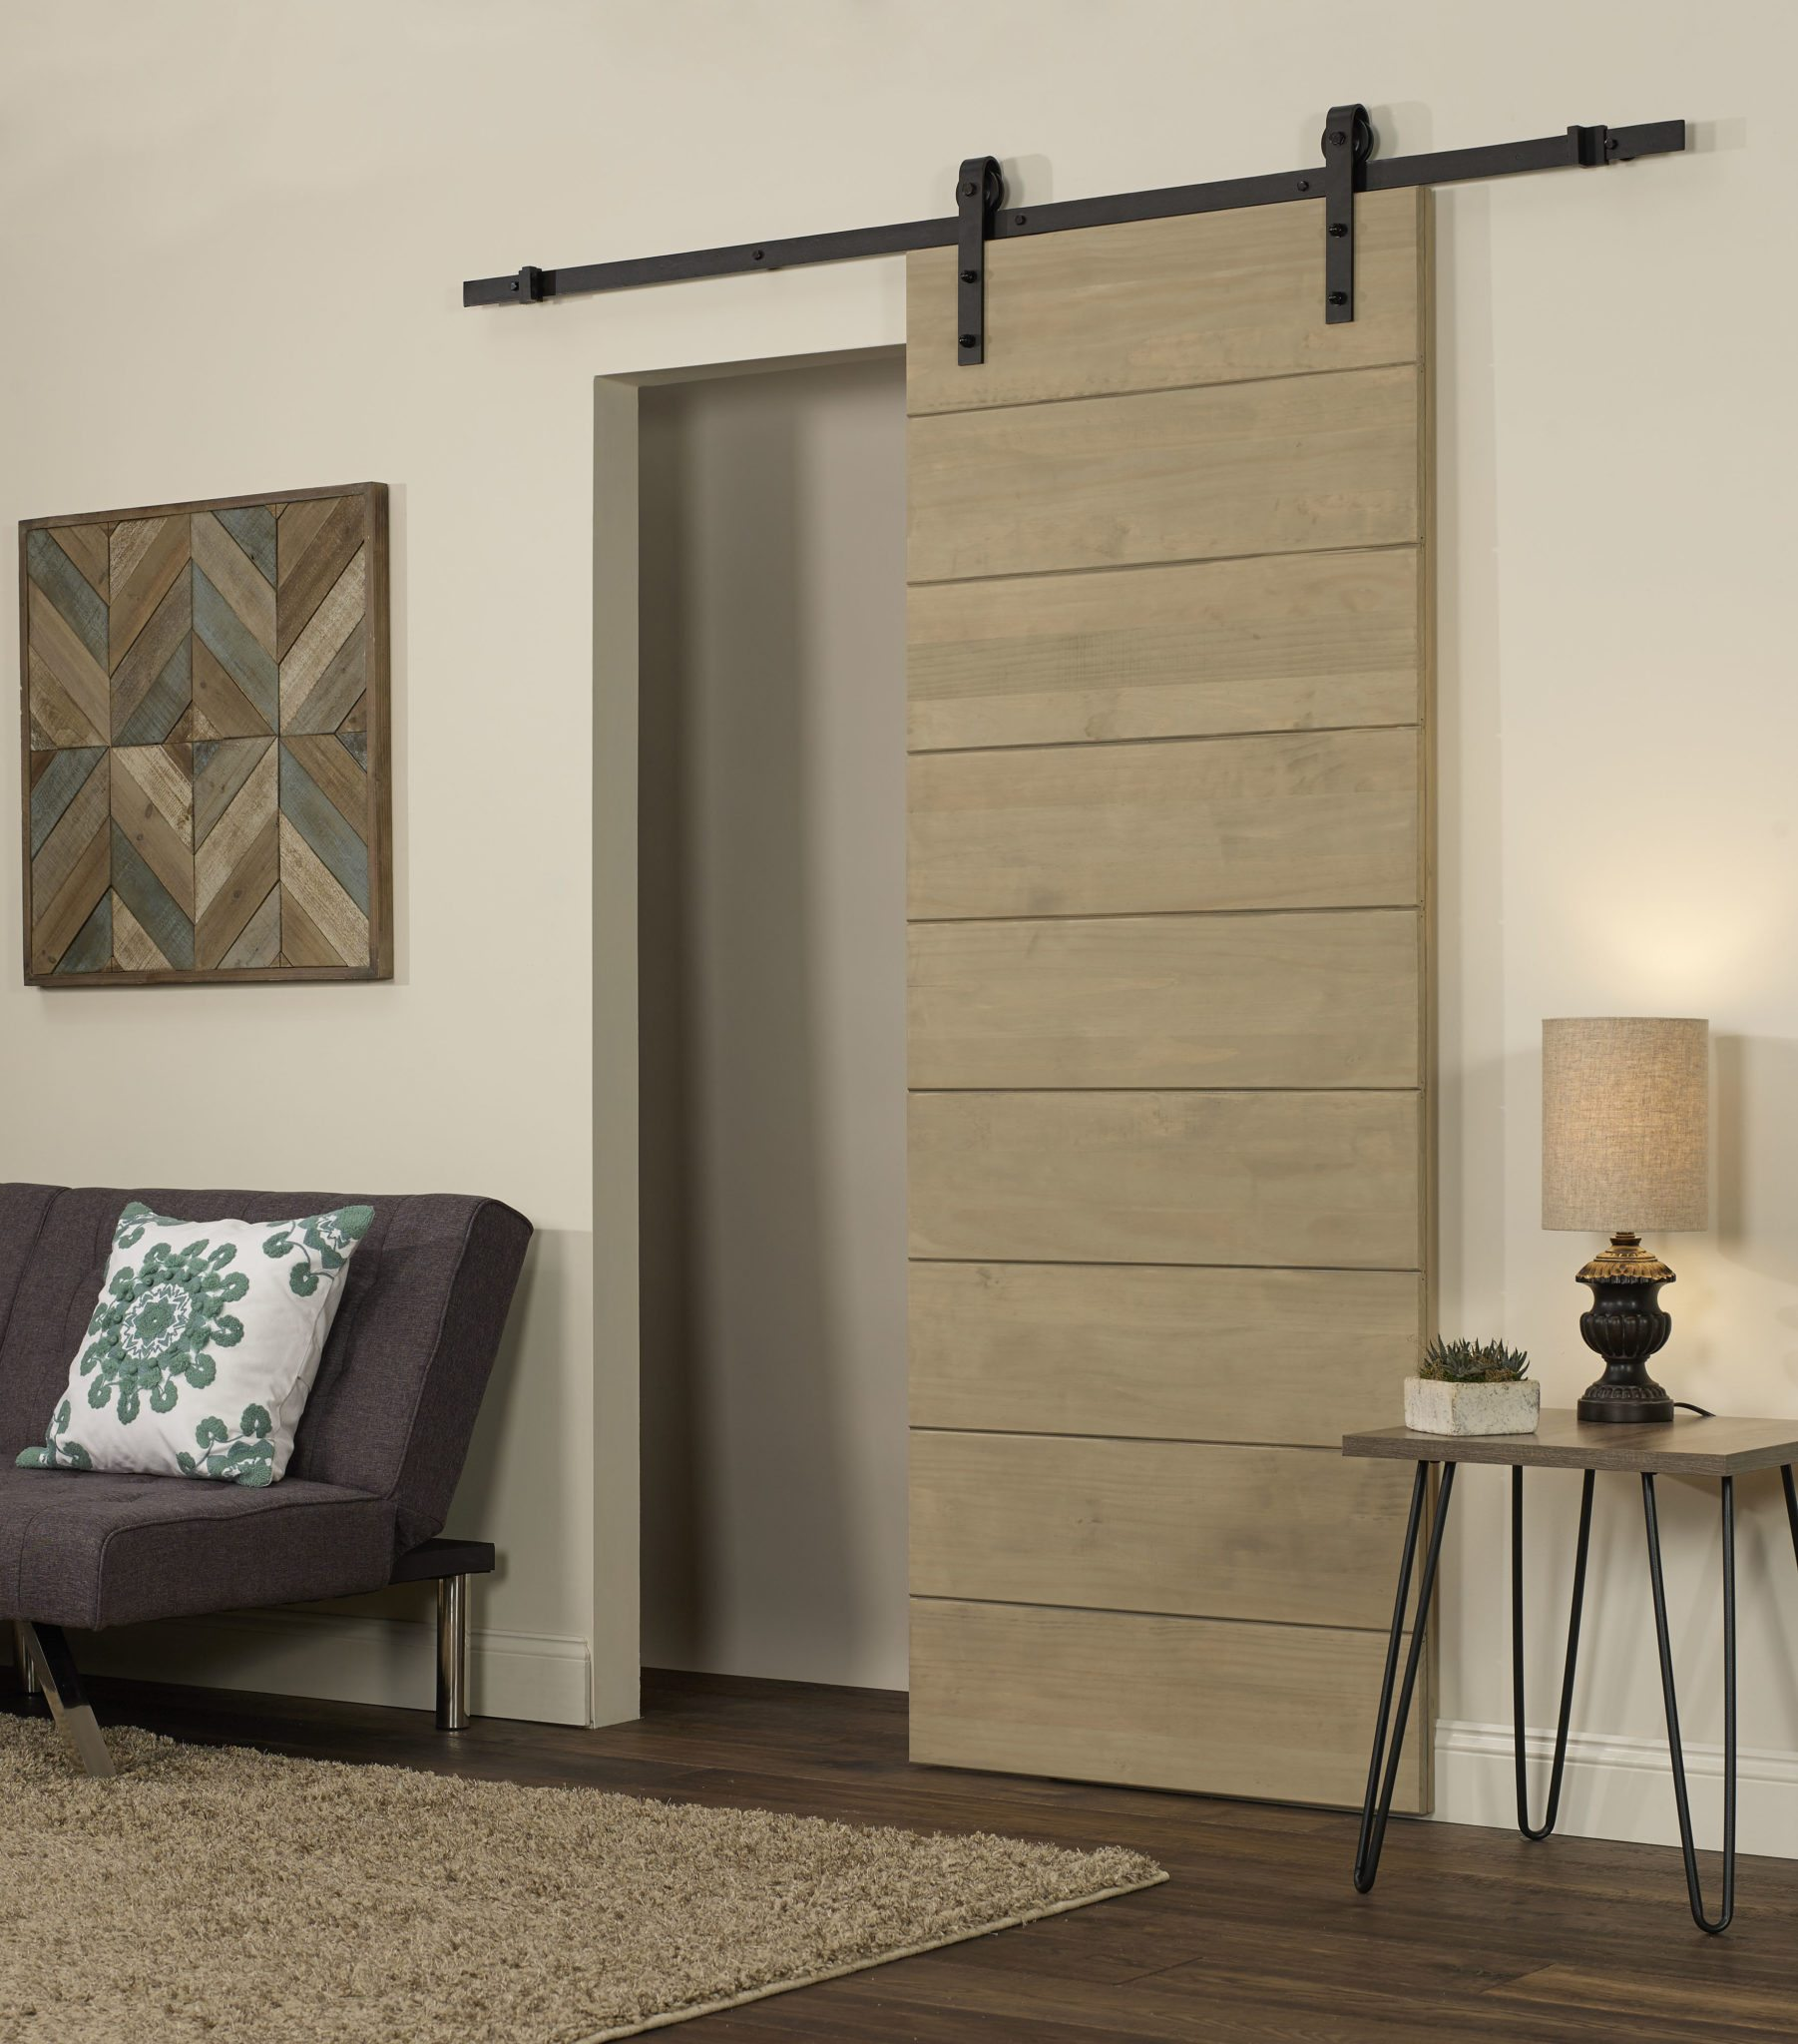 Wood Barn Doors & Barn Doors by LTL Home Products Inc.